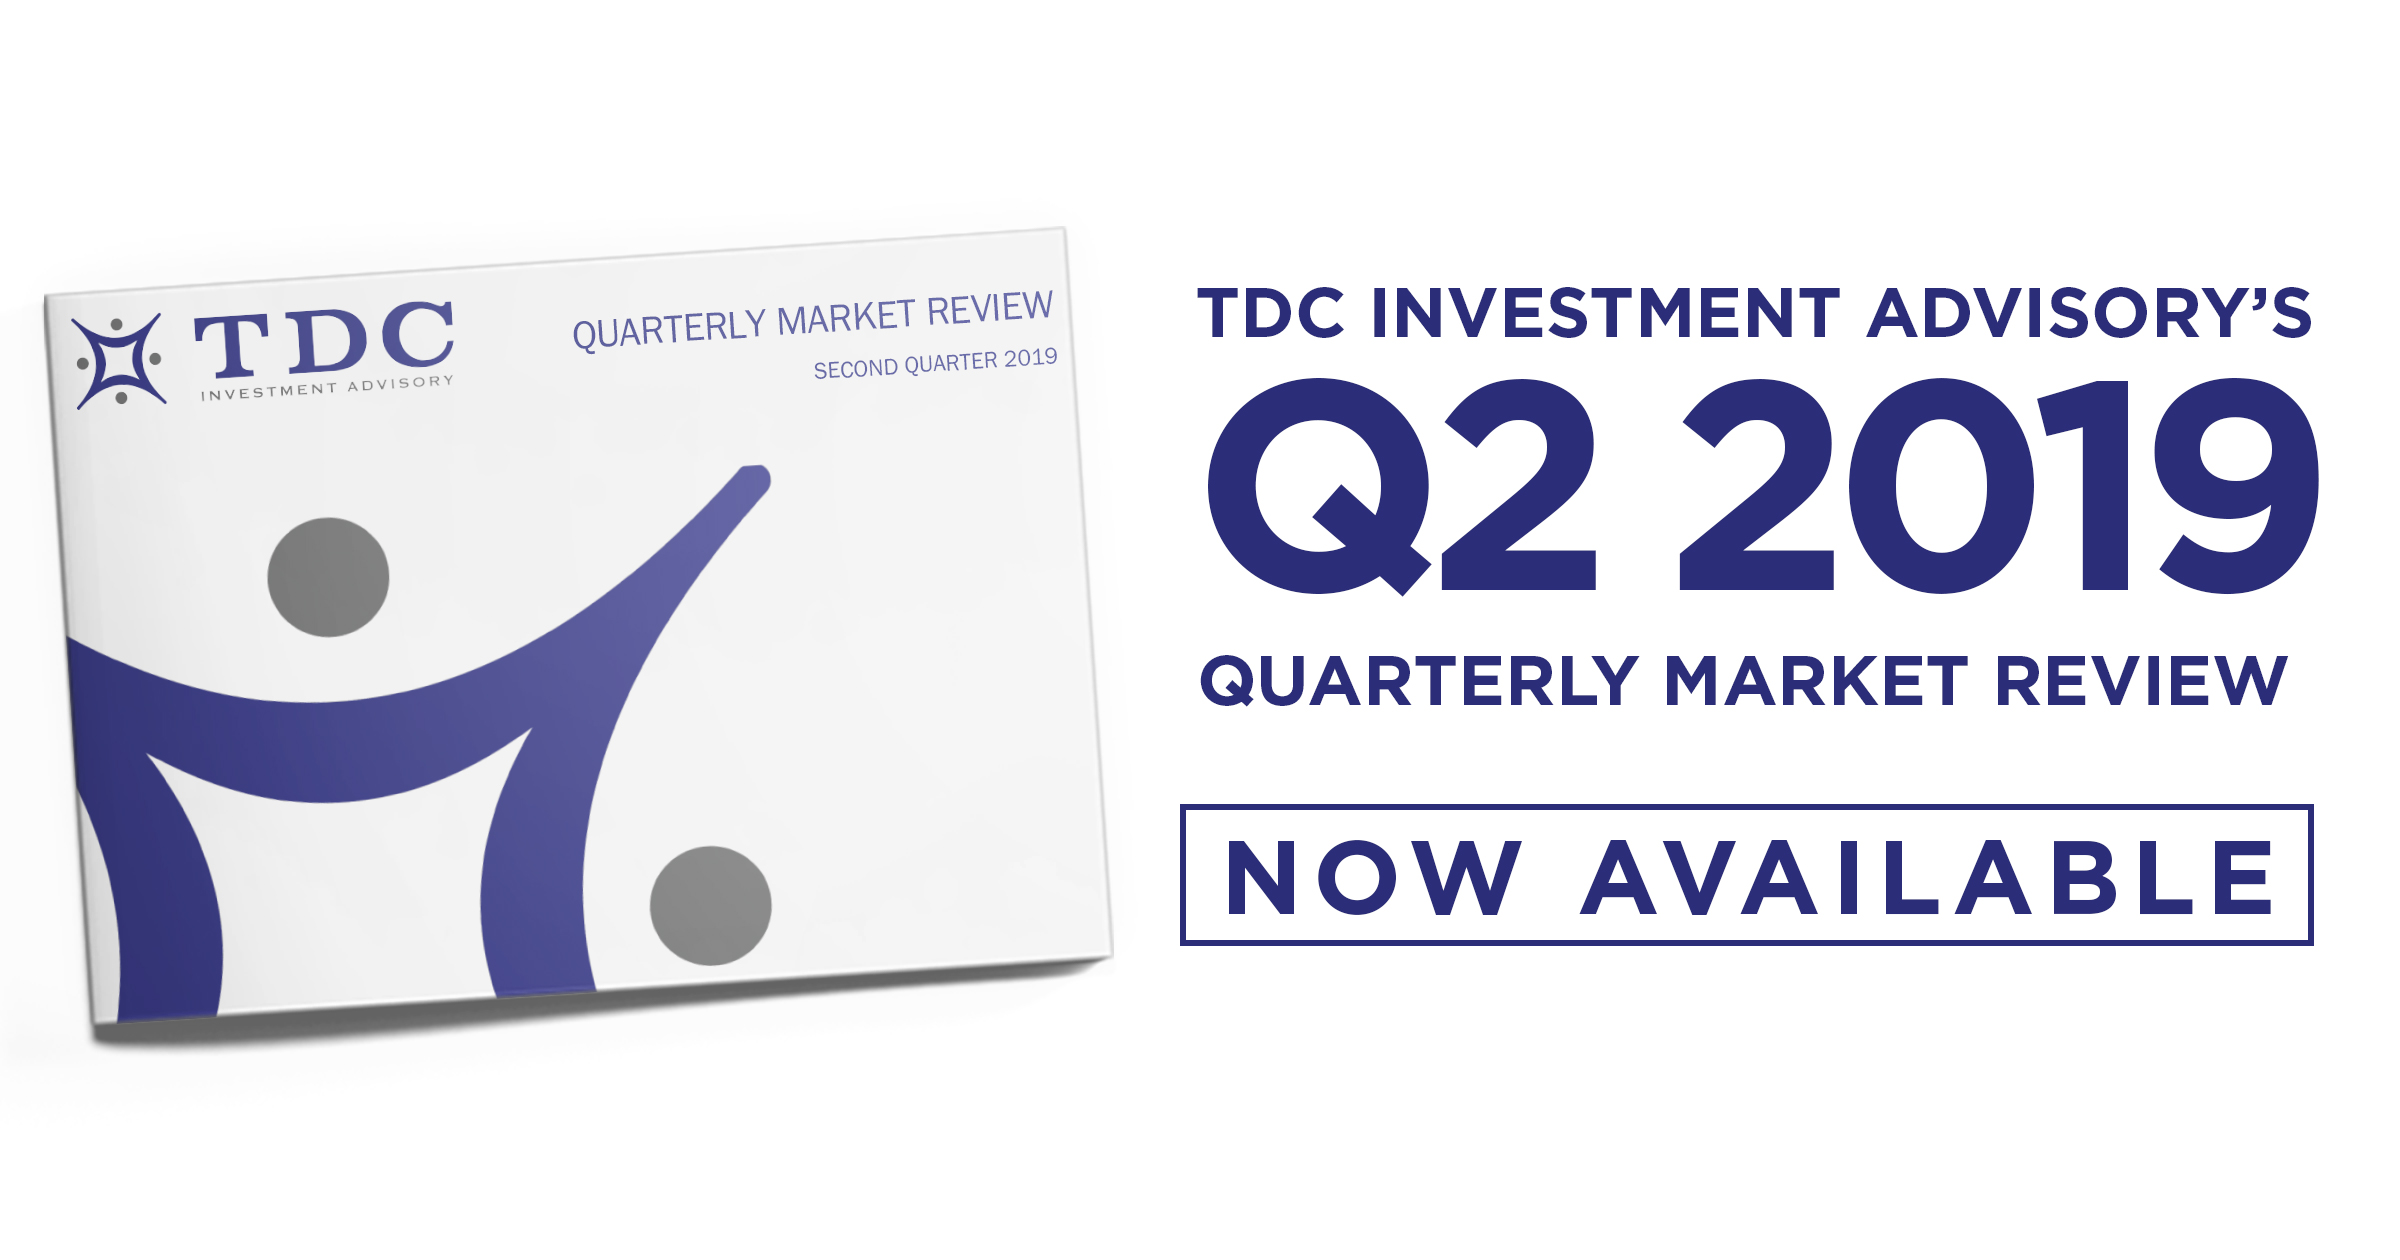 TDC's Quarterly Market Review for Q2 2019 is Now Available